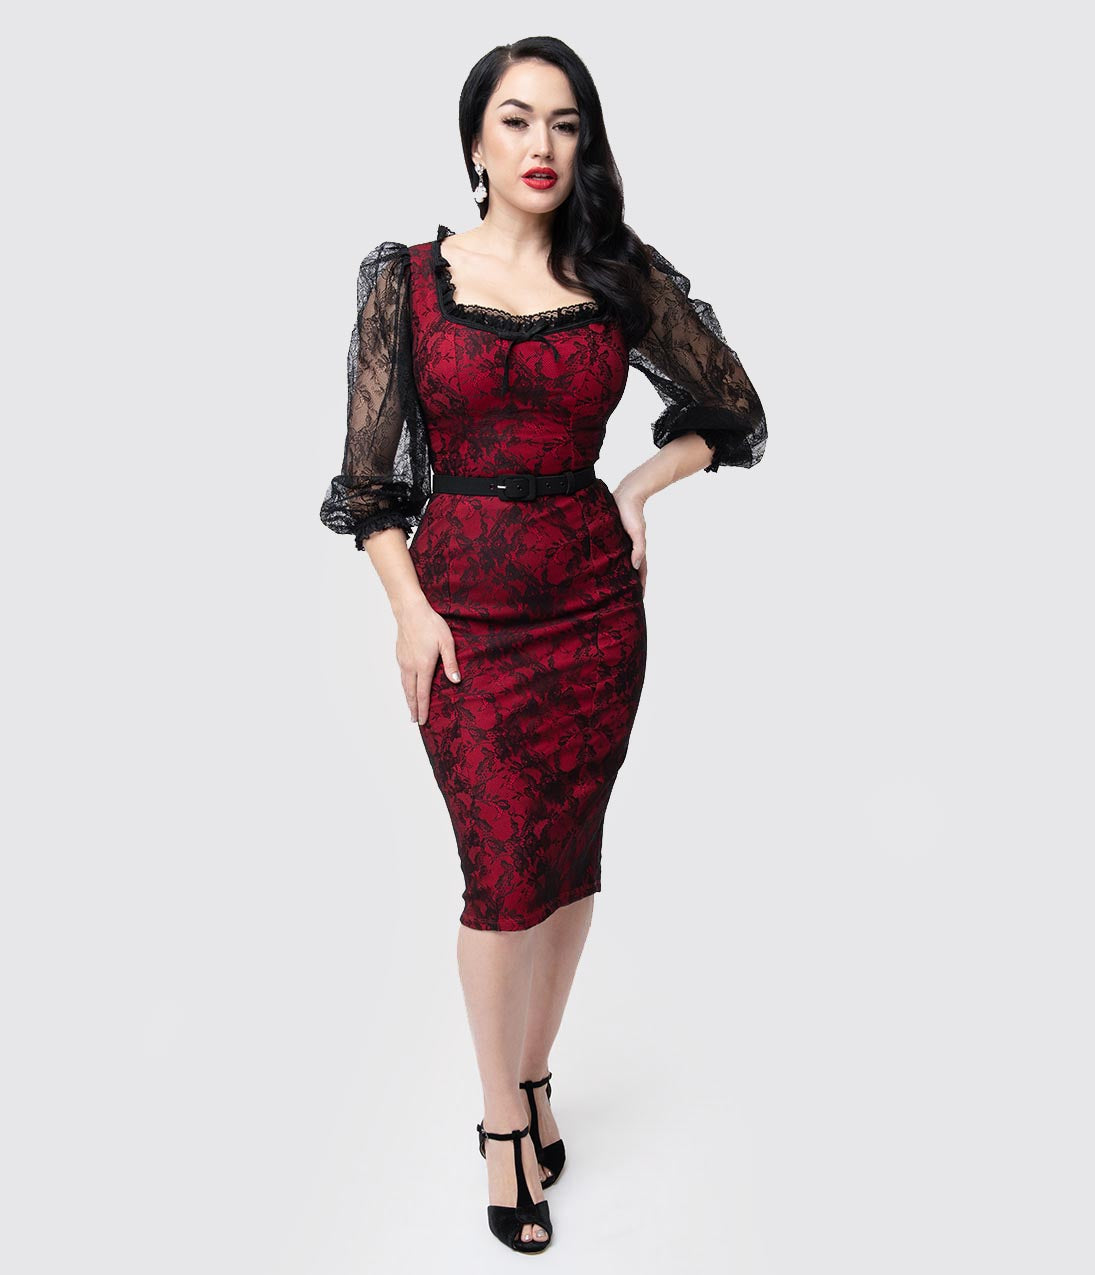 Vintage Christmas Dress | Party Dresses | Night Out Outfits Vixen By Micheline Pitt Red  Black Lace Decadence Wiggle Dress $166.00 AT vintagedancer.com